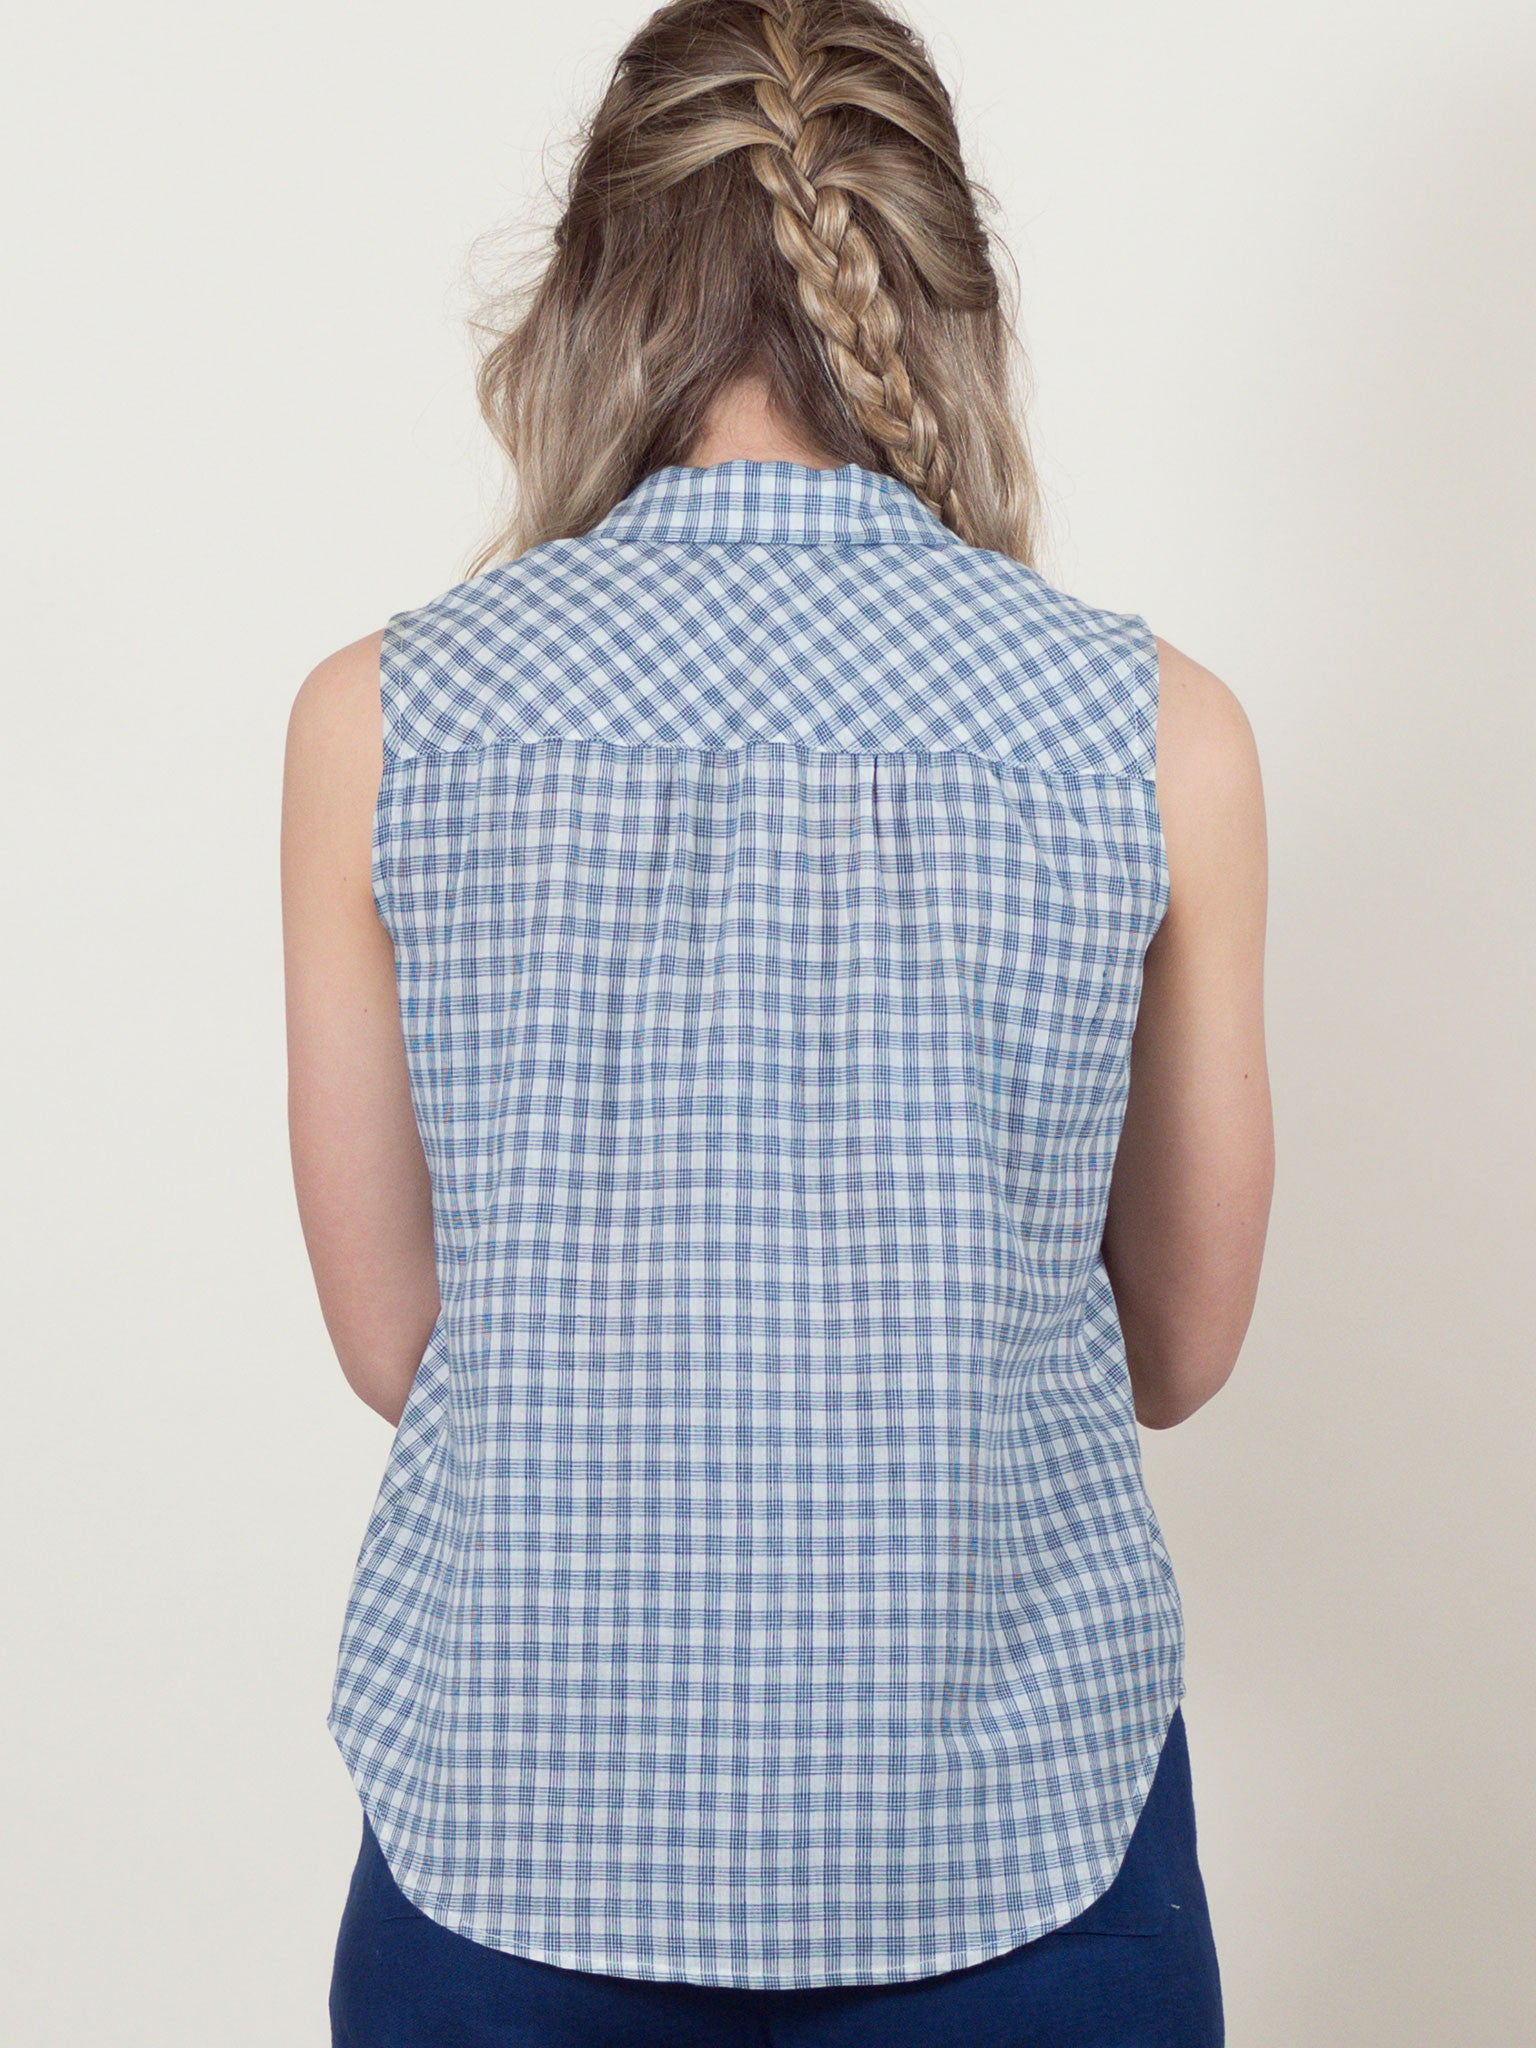 Poppy Top in Navy Check